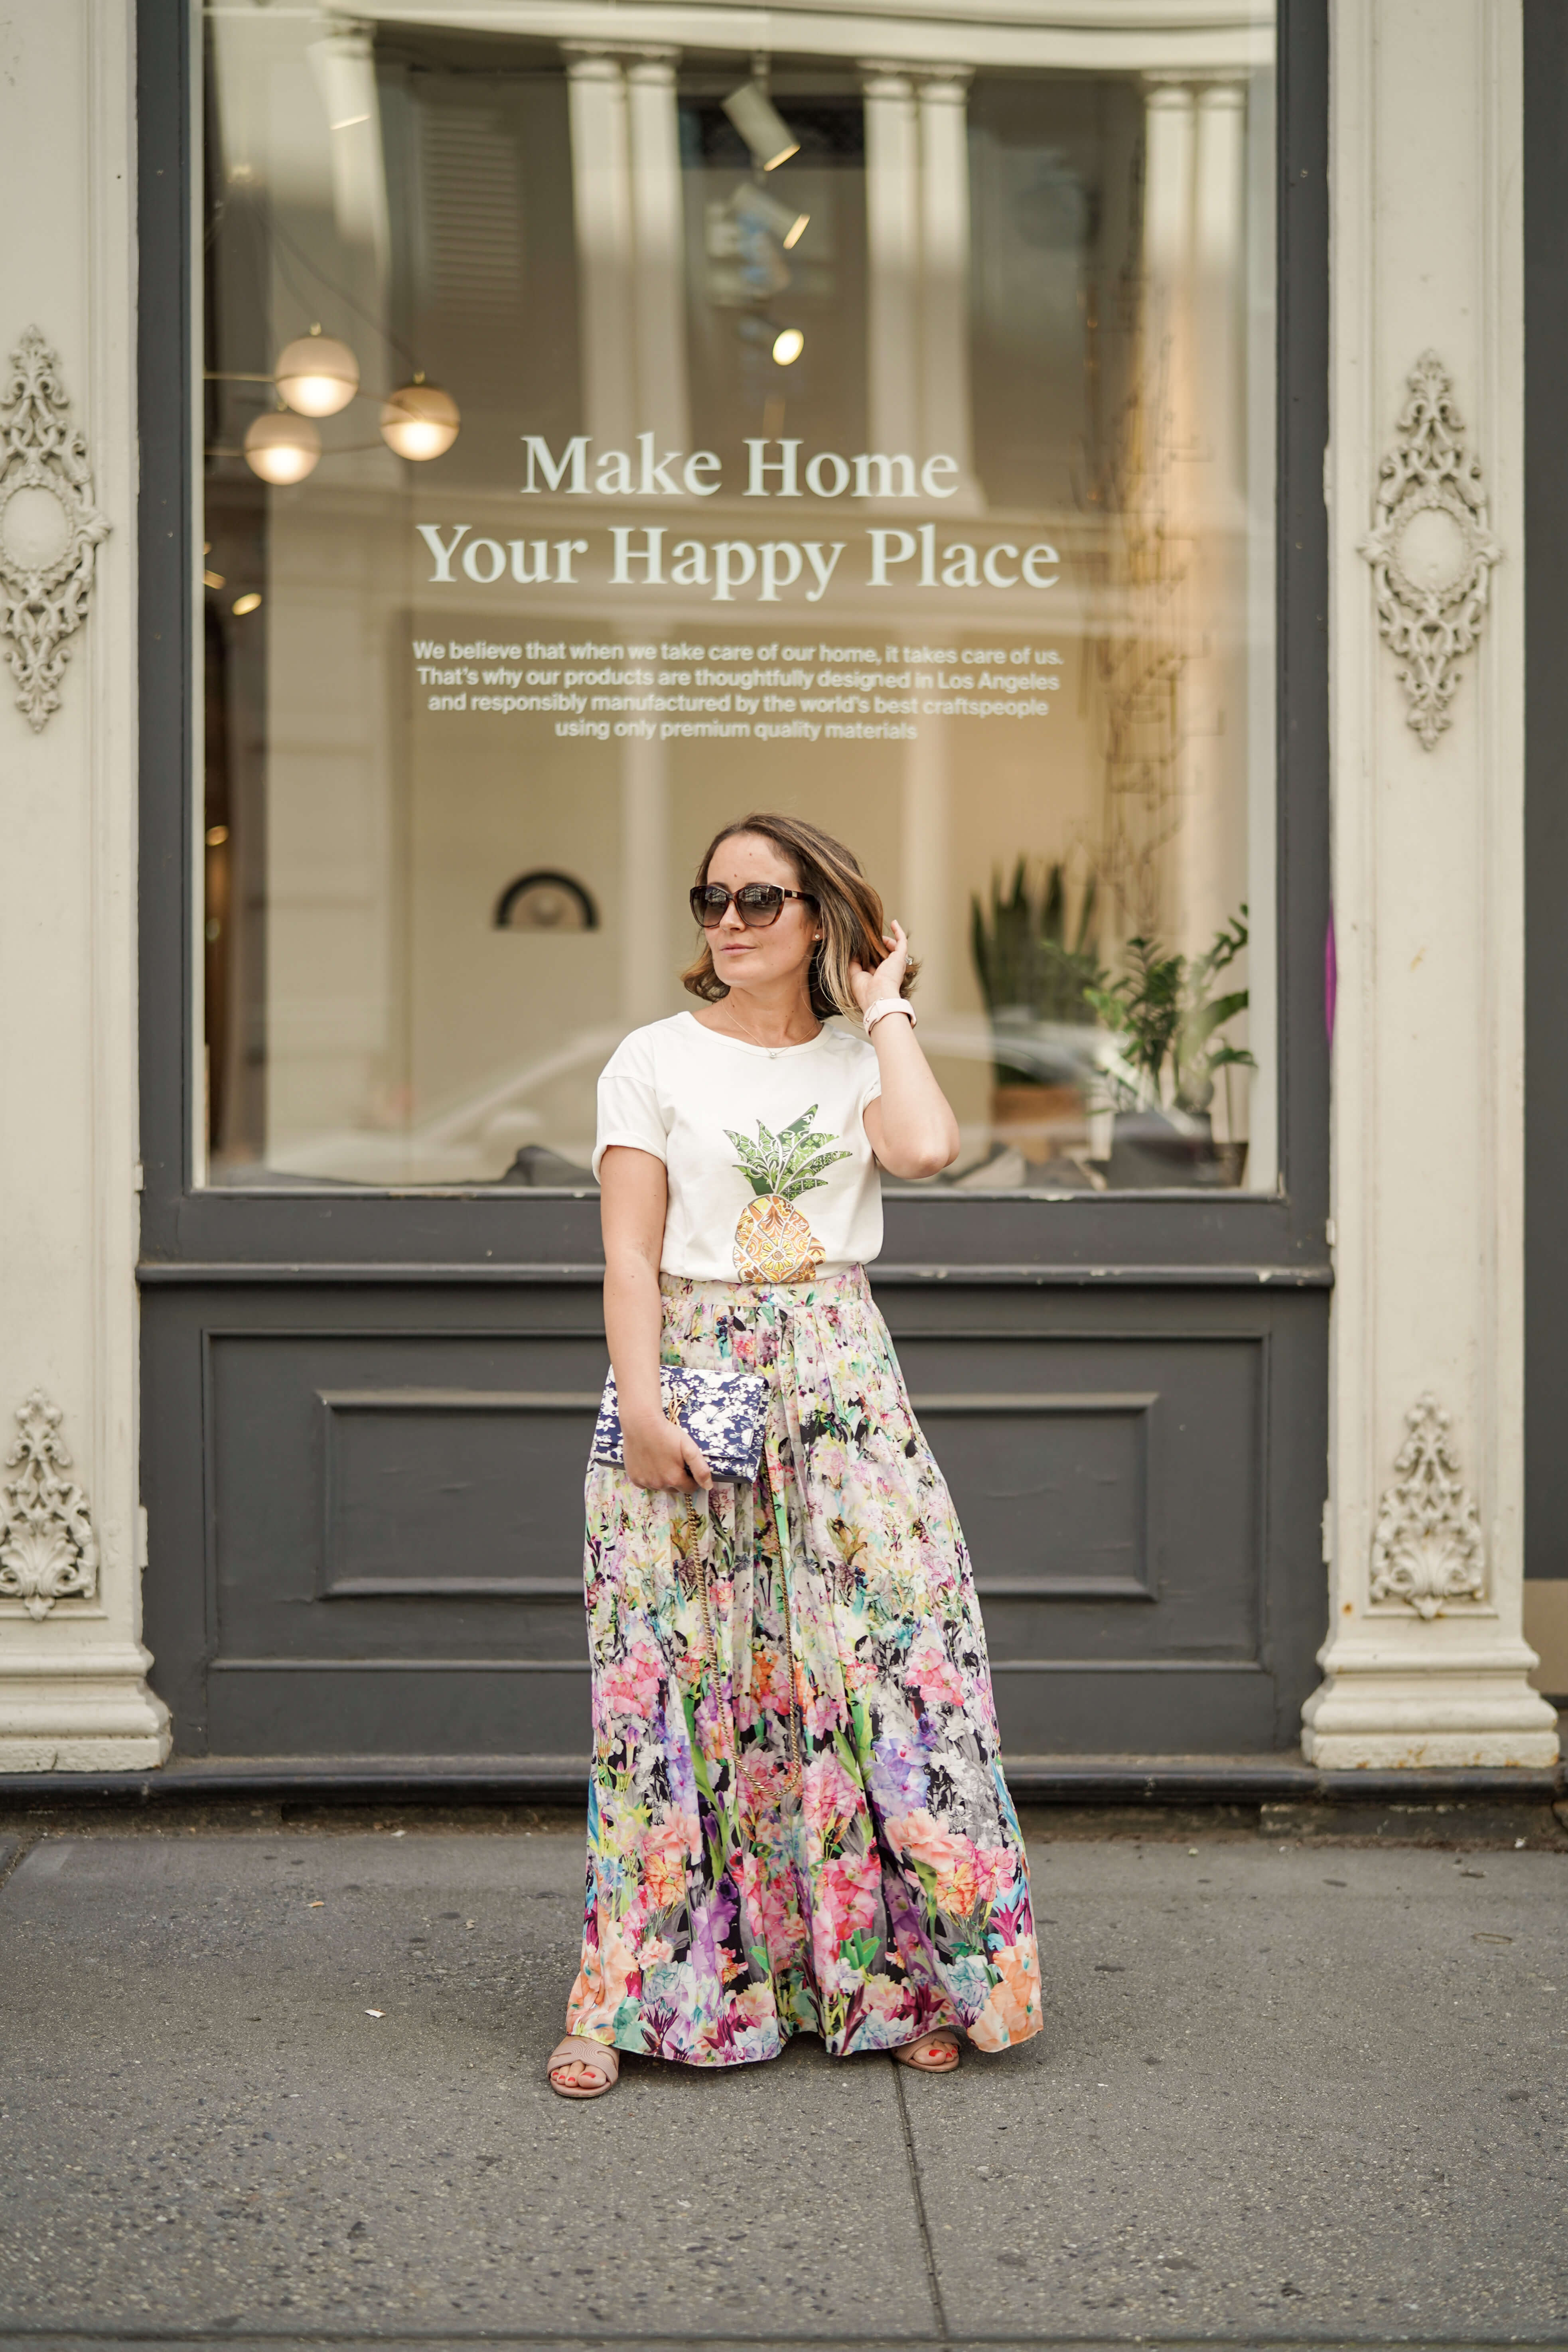 Anthropologie Skirt Farm Rio Top Coclico Shoes YSL Bag Outfit by Modnitsa Styling